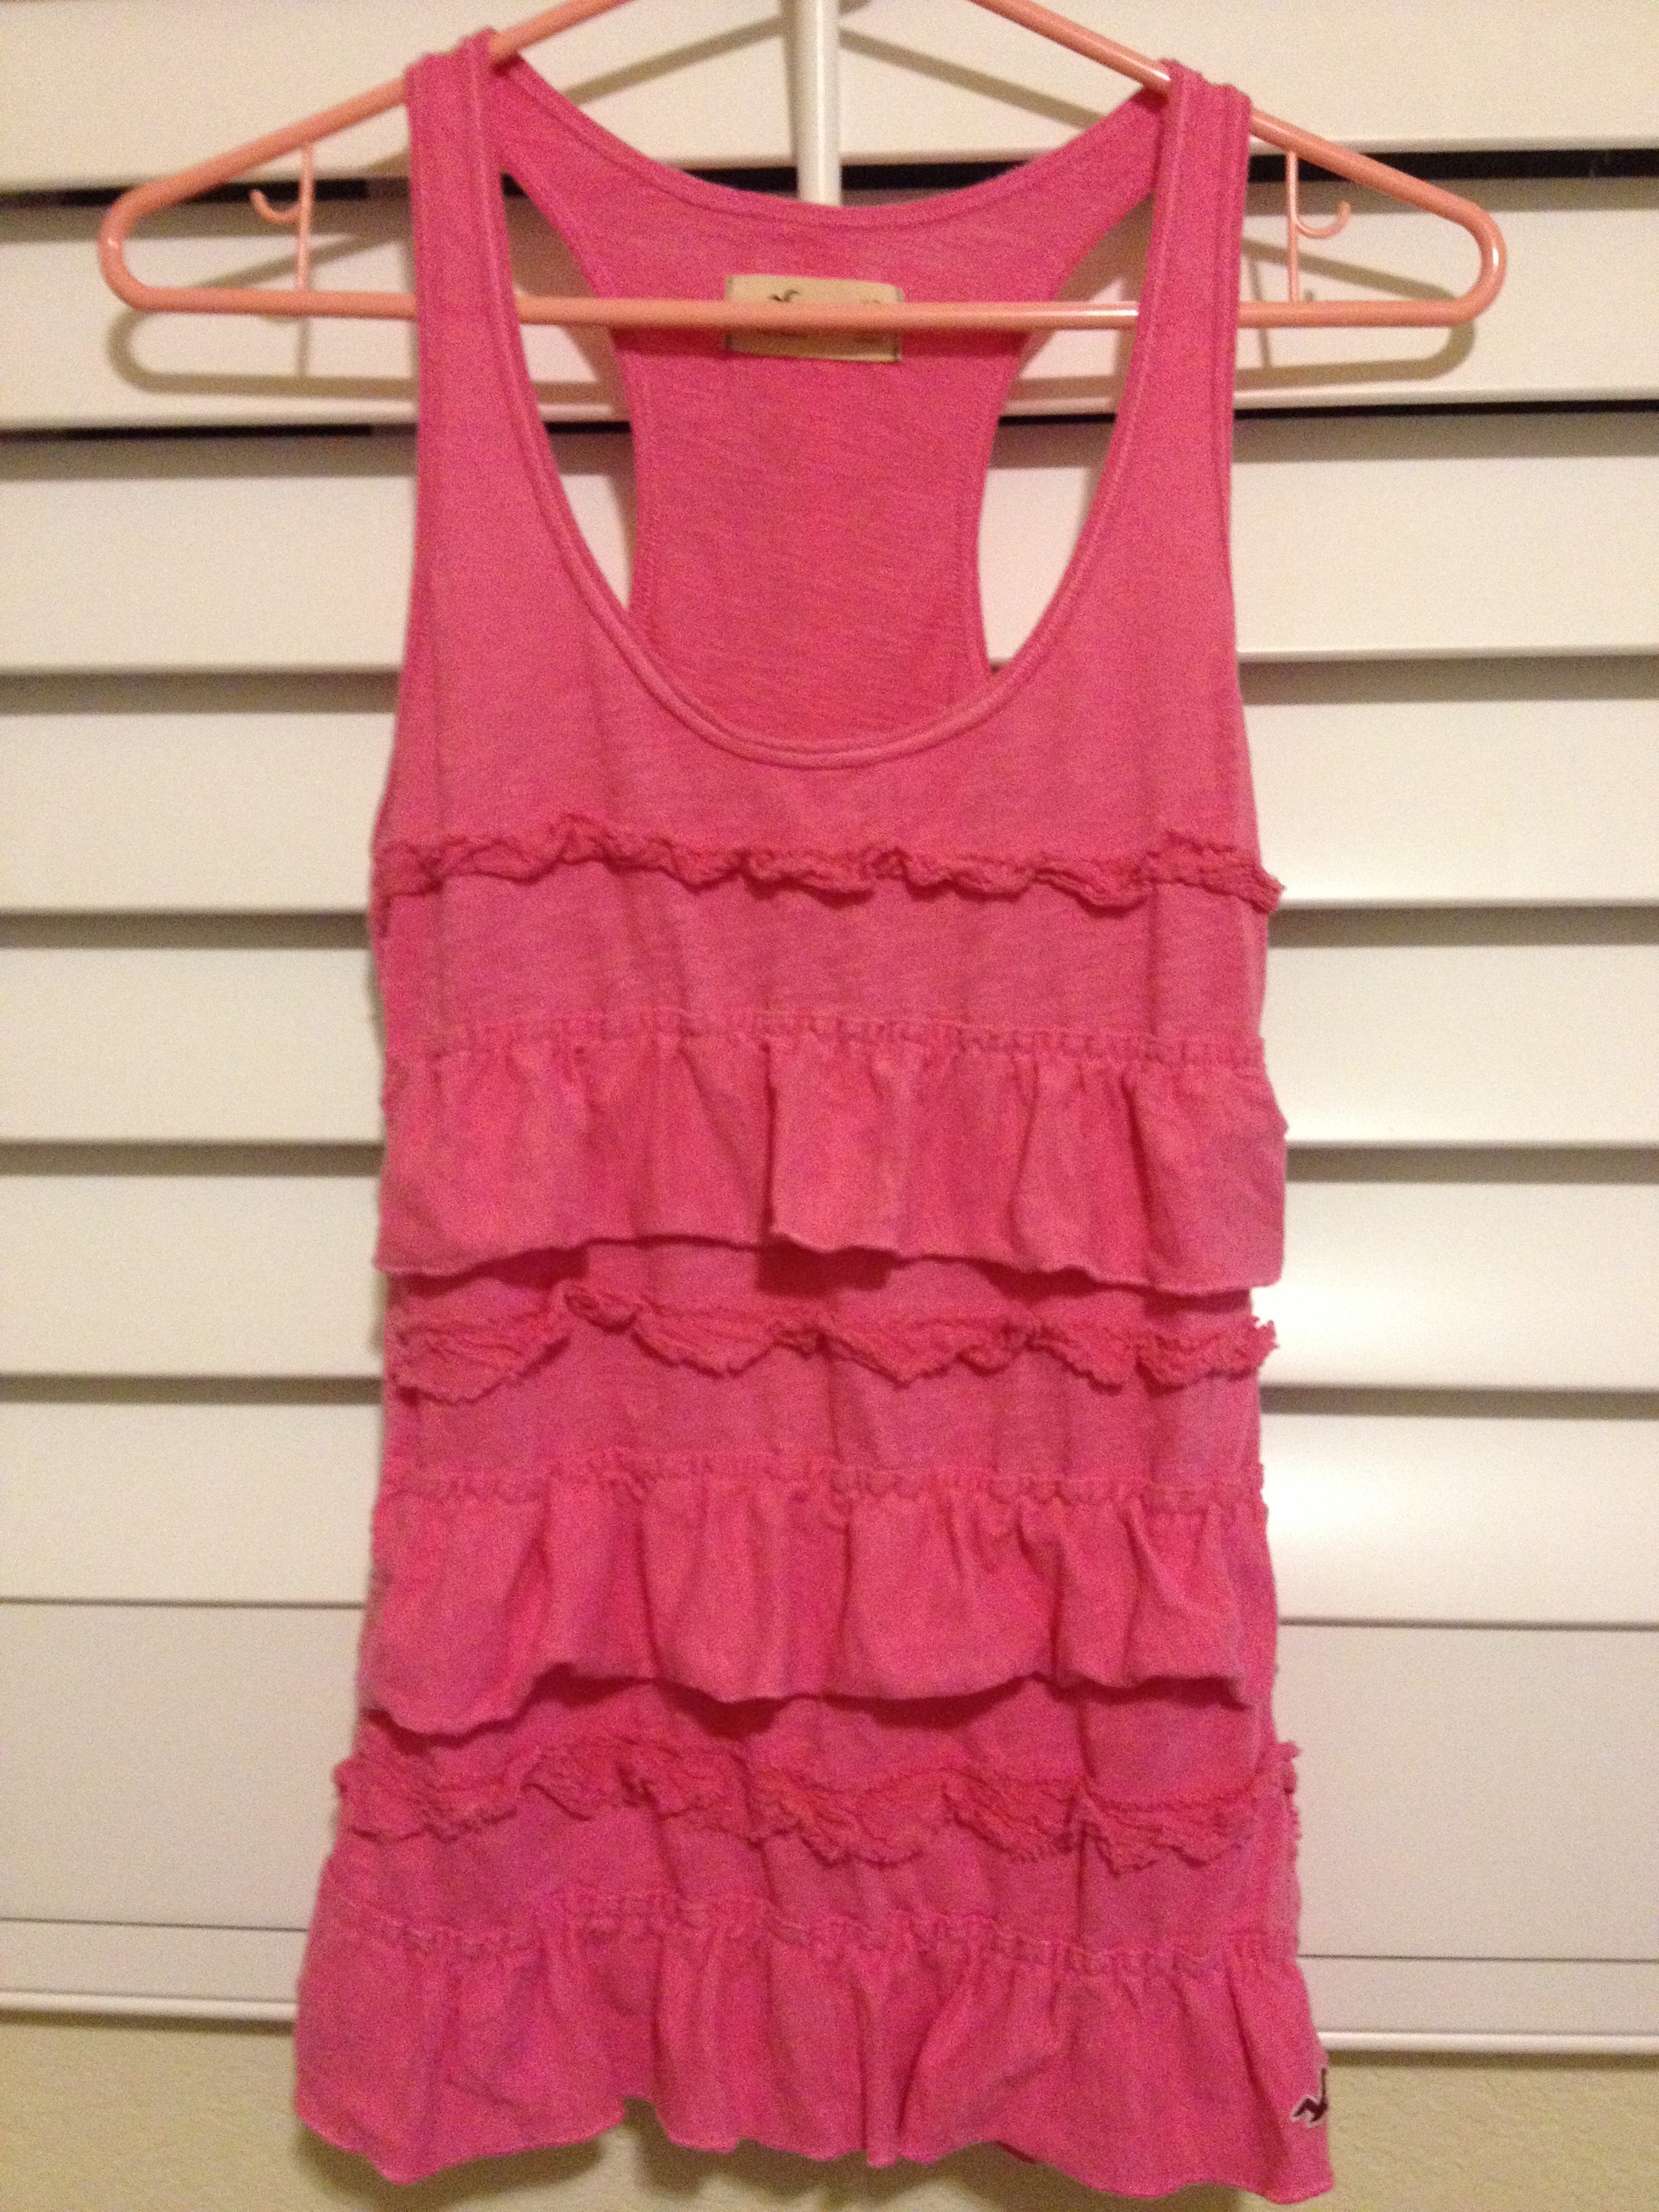 4af0c8416a9ace Hot Pink Hollister Ruffle Tank Top · Berry Rosy · Online Store ...